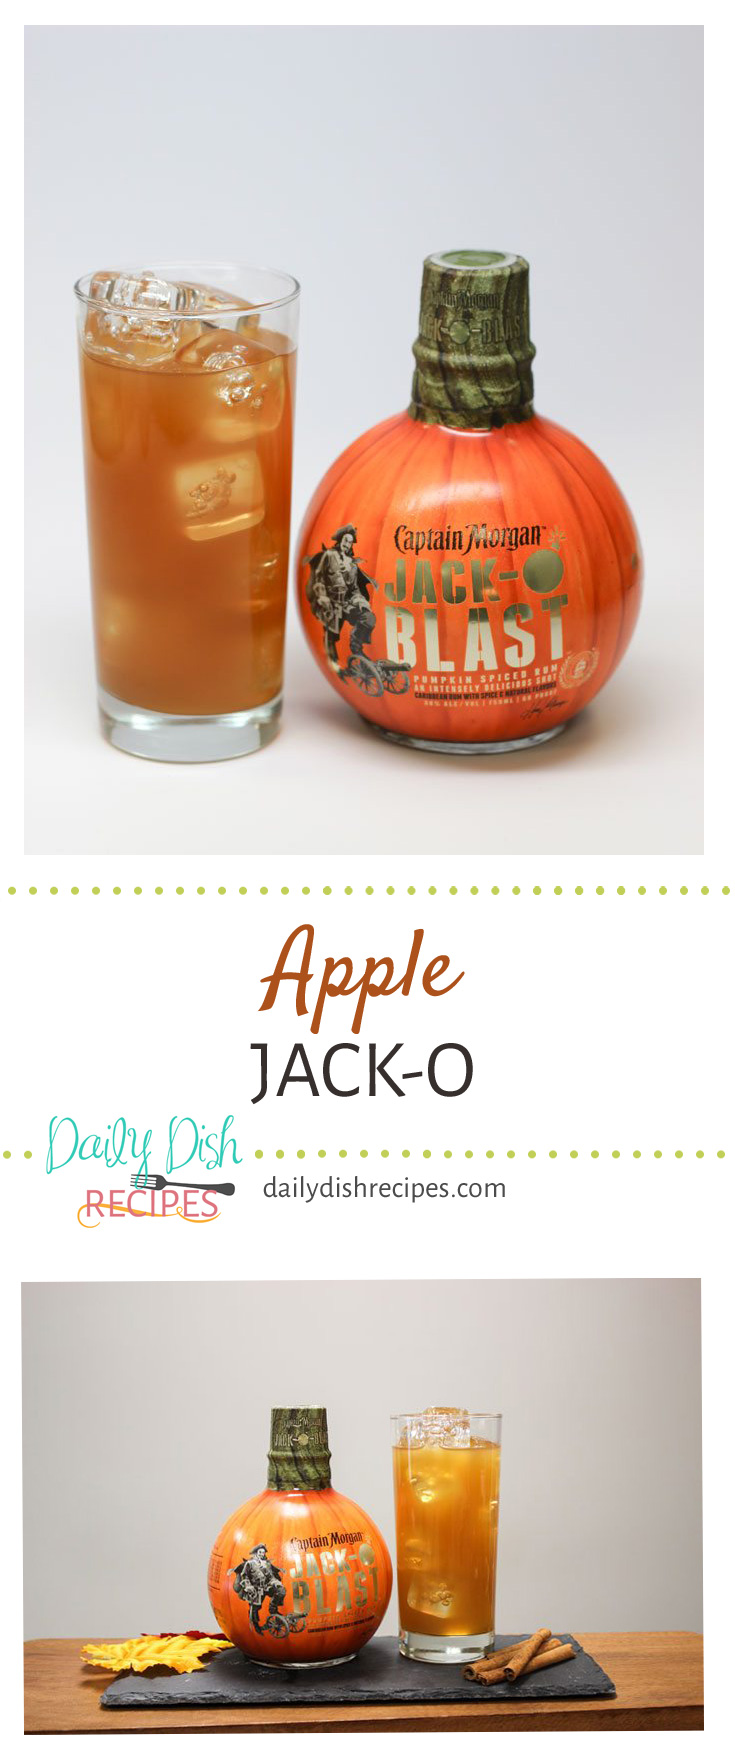 It's Apple. It's Pumpkin. It's Spiced. And it's the perfect Fall drink to unwind at the end of the day. Forget the wine, reach for a glass of Apple Jack-O. It is made with Captain Morgan's Limited Edition Jack-O'Blast and tastes oh, so good!